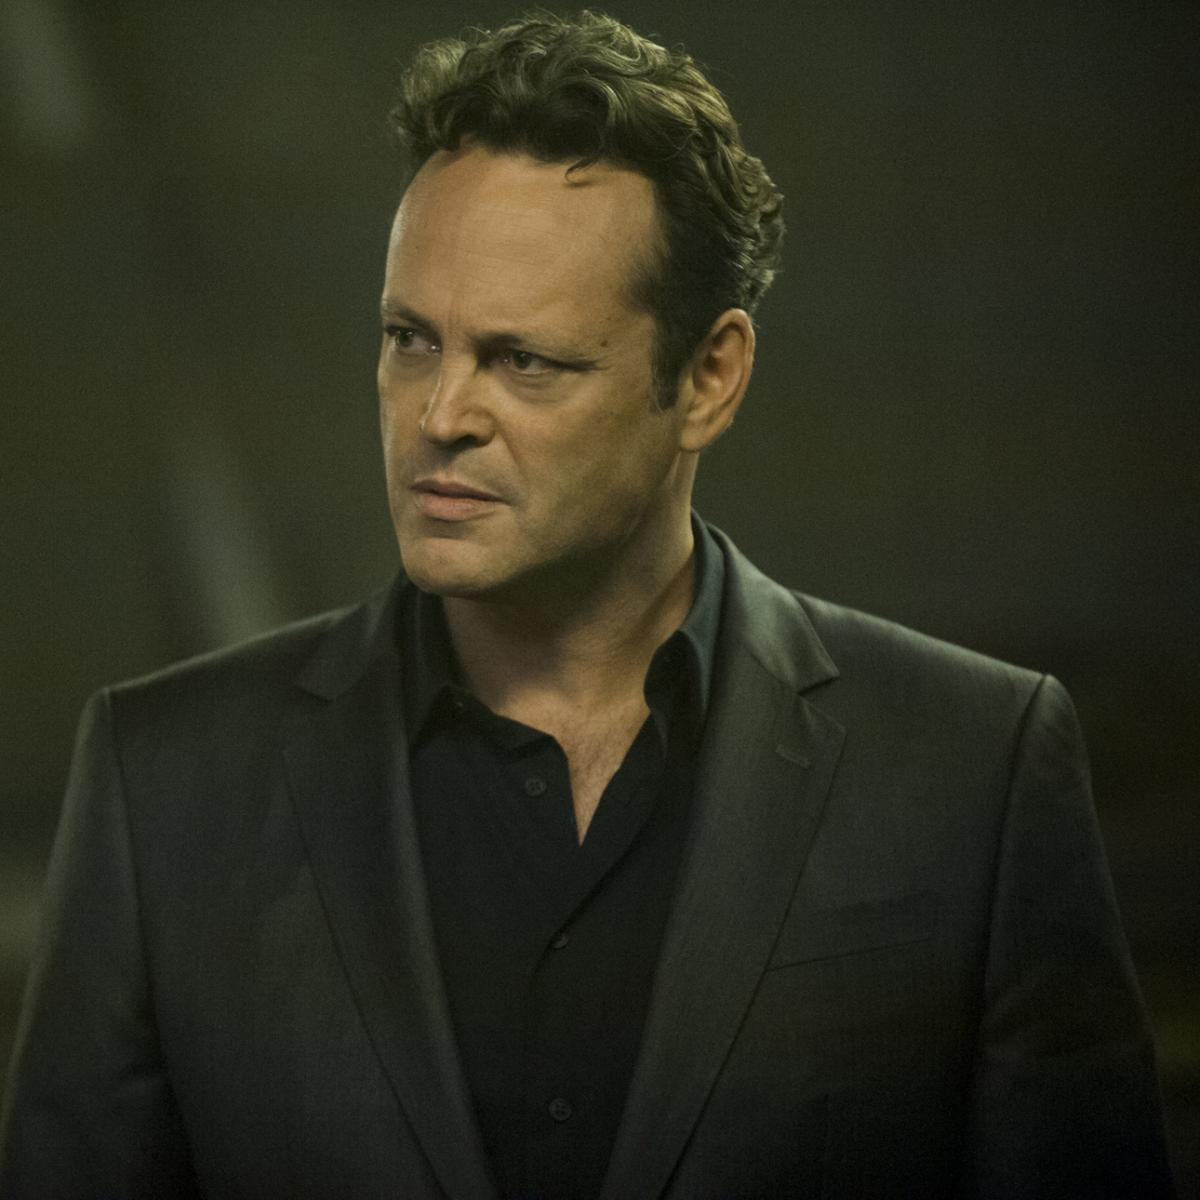 Vince Vaughn plays a crime boss scrambling to complete a business deal in HBO's True Detective.